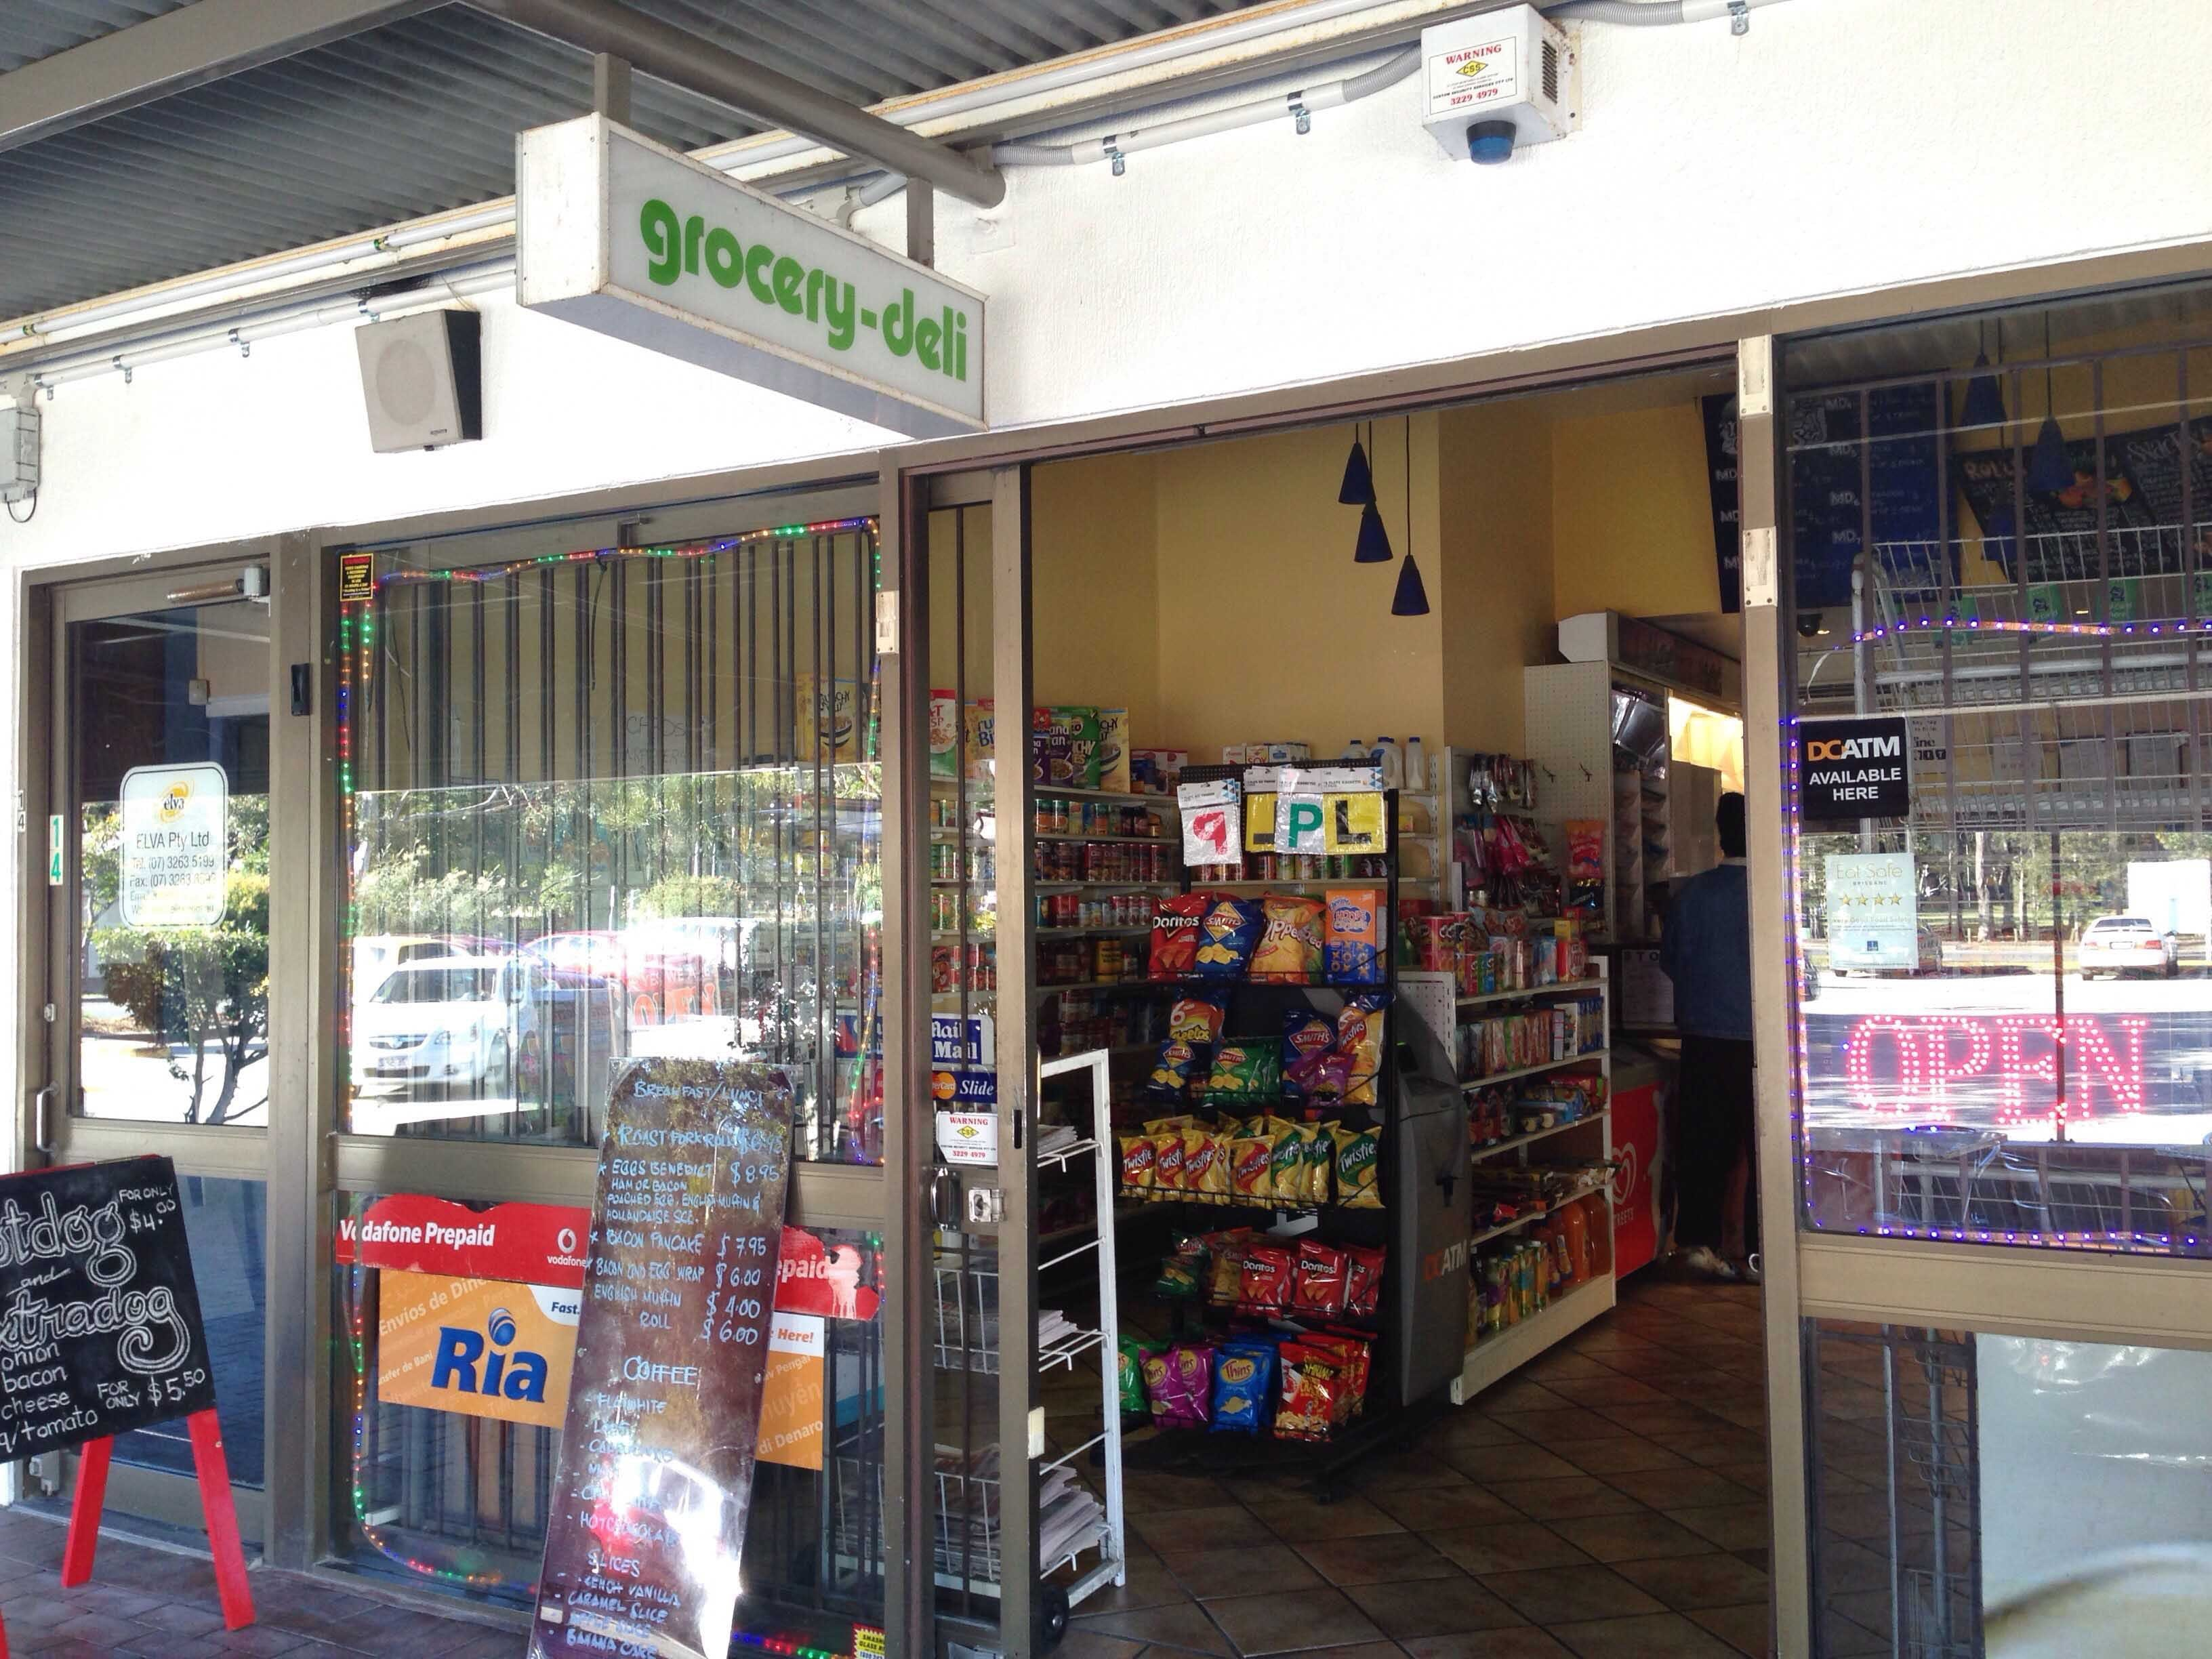 Grocery Deli - Lightning Ridge Tourism